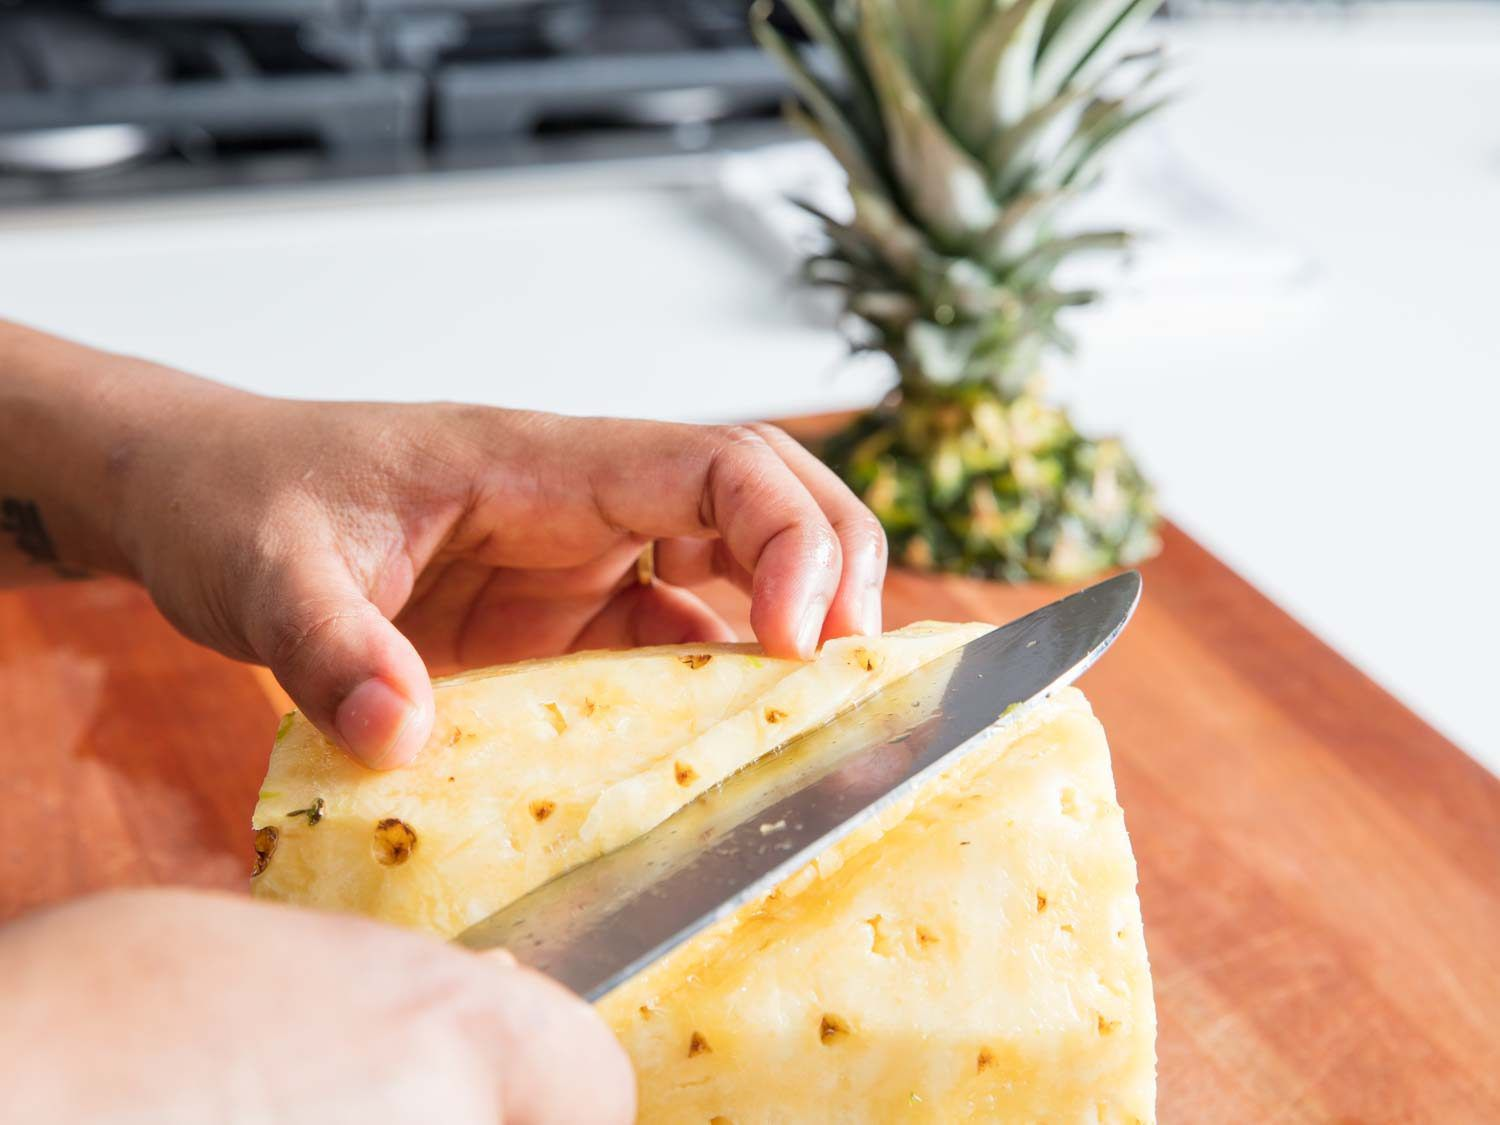 A knife cutting diagonally along the eyes of a pineapple.